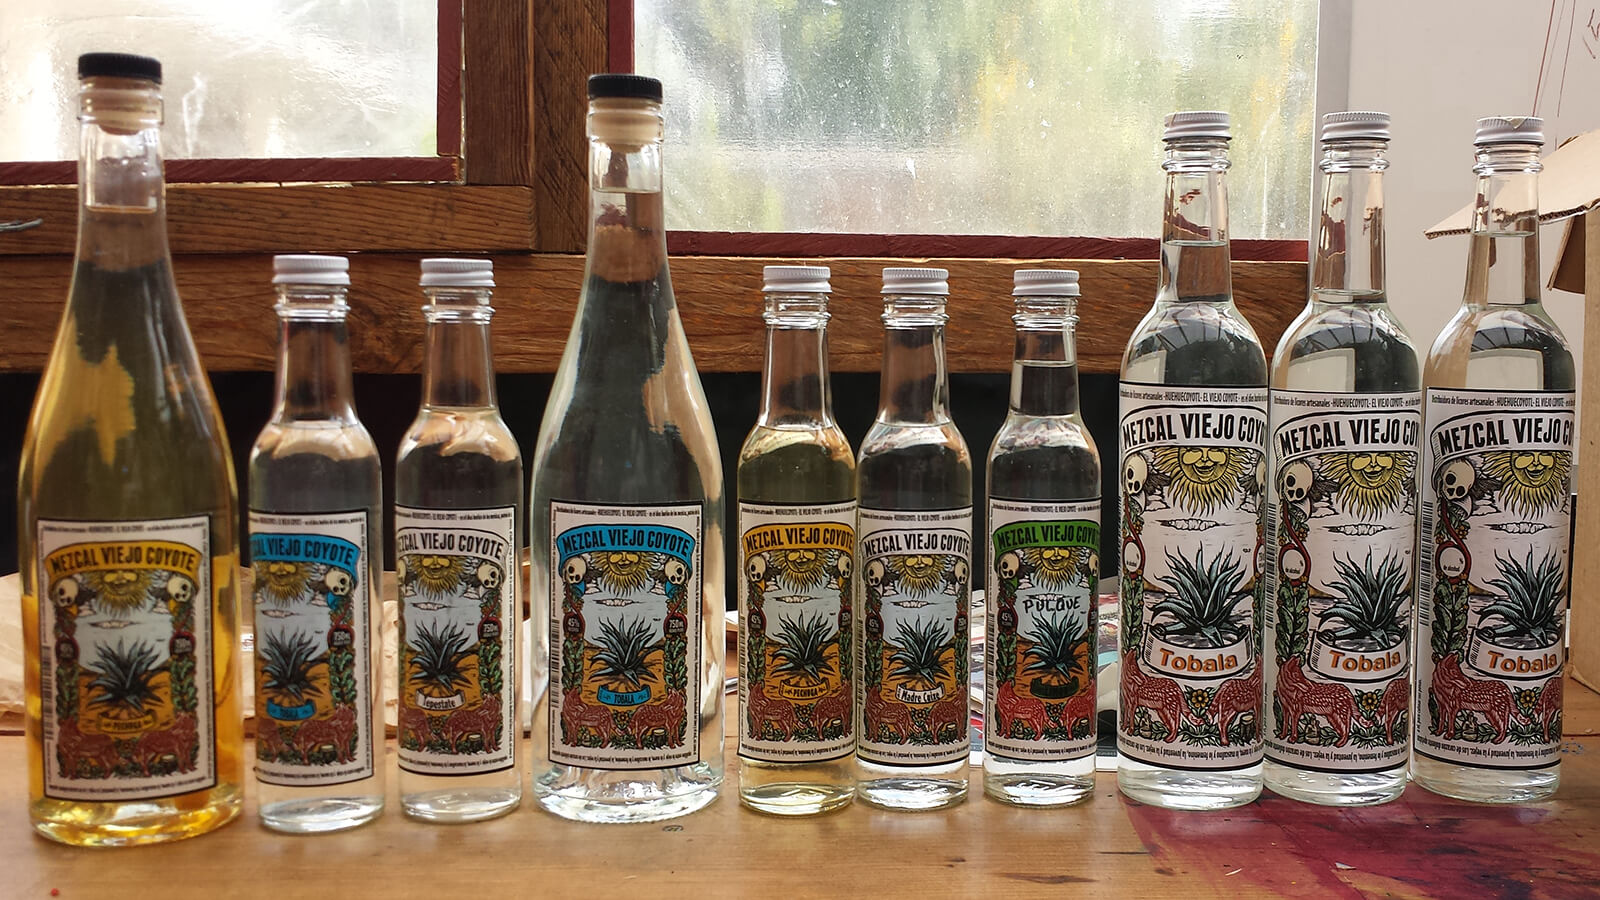 Mezcal is another of the unique traditional alcoholic beverages to try when traveling